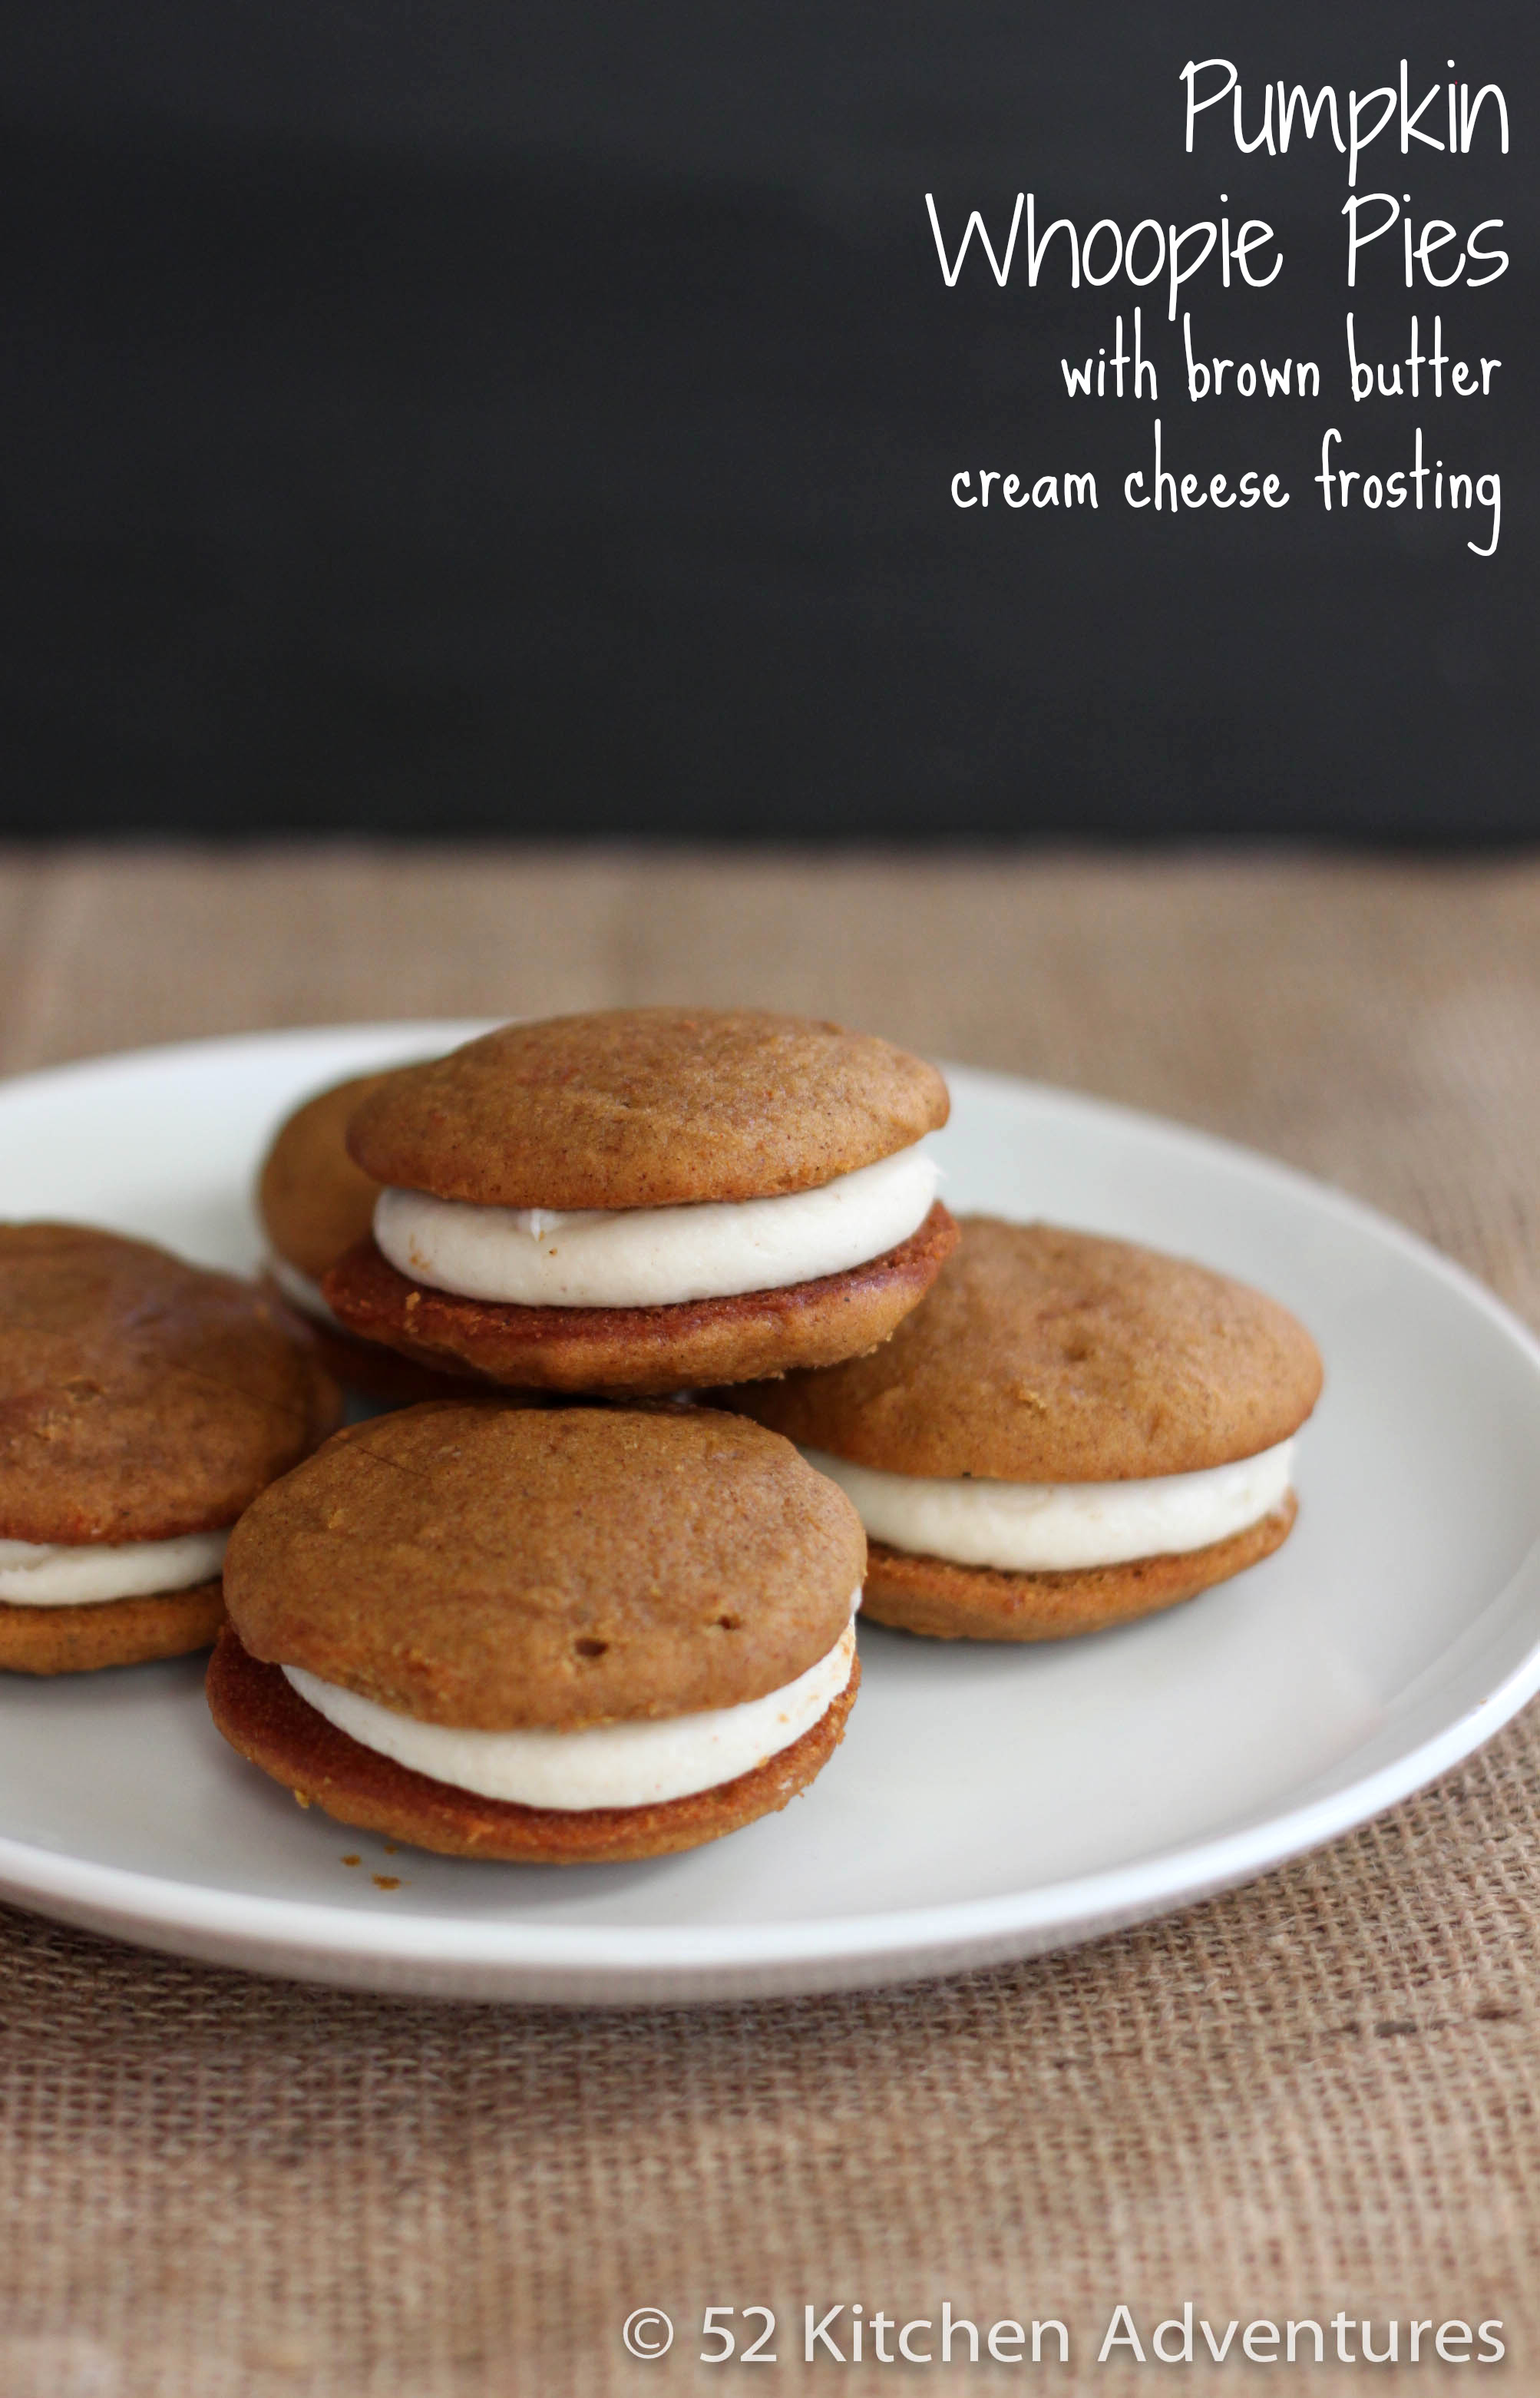 Pumpkin Whoopie Pies with Brown Butter Cream Cheese Frosting